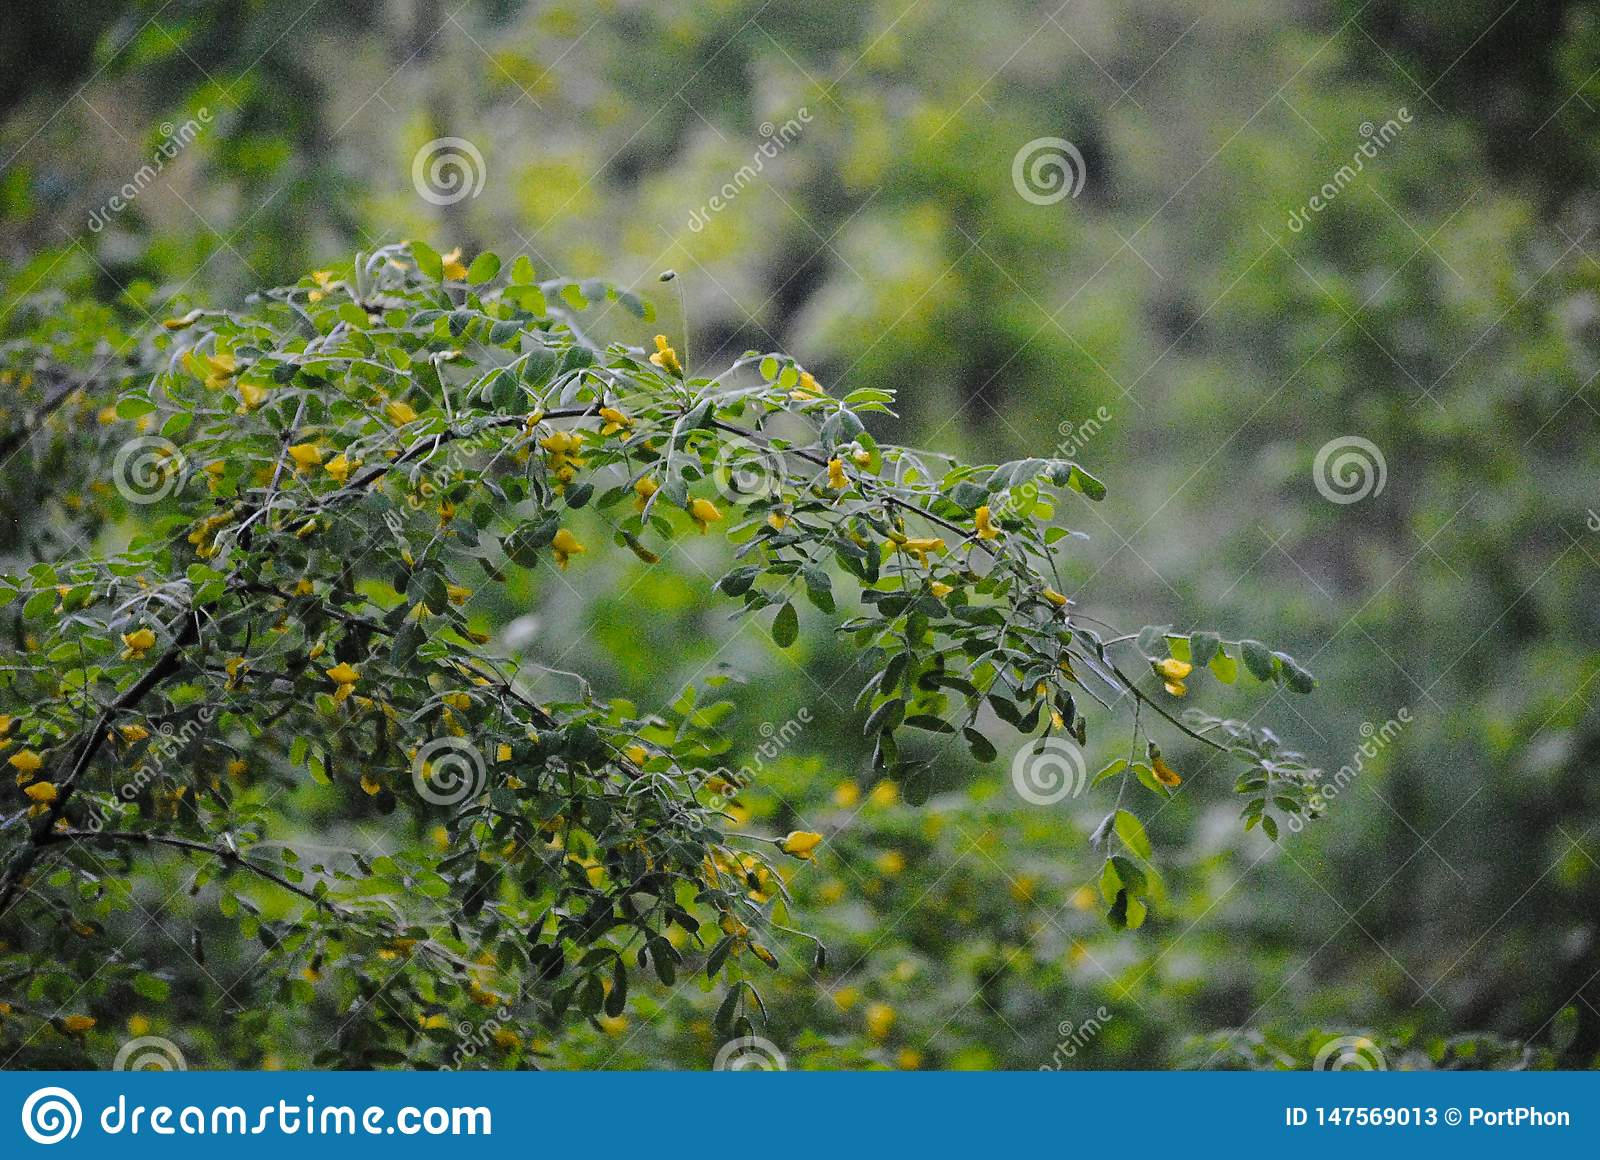 Yellow flowers on a branch